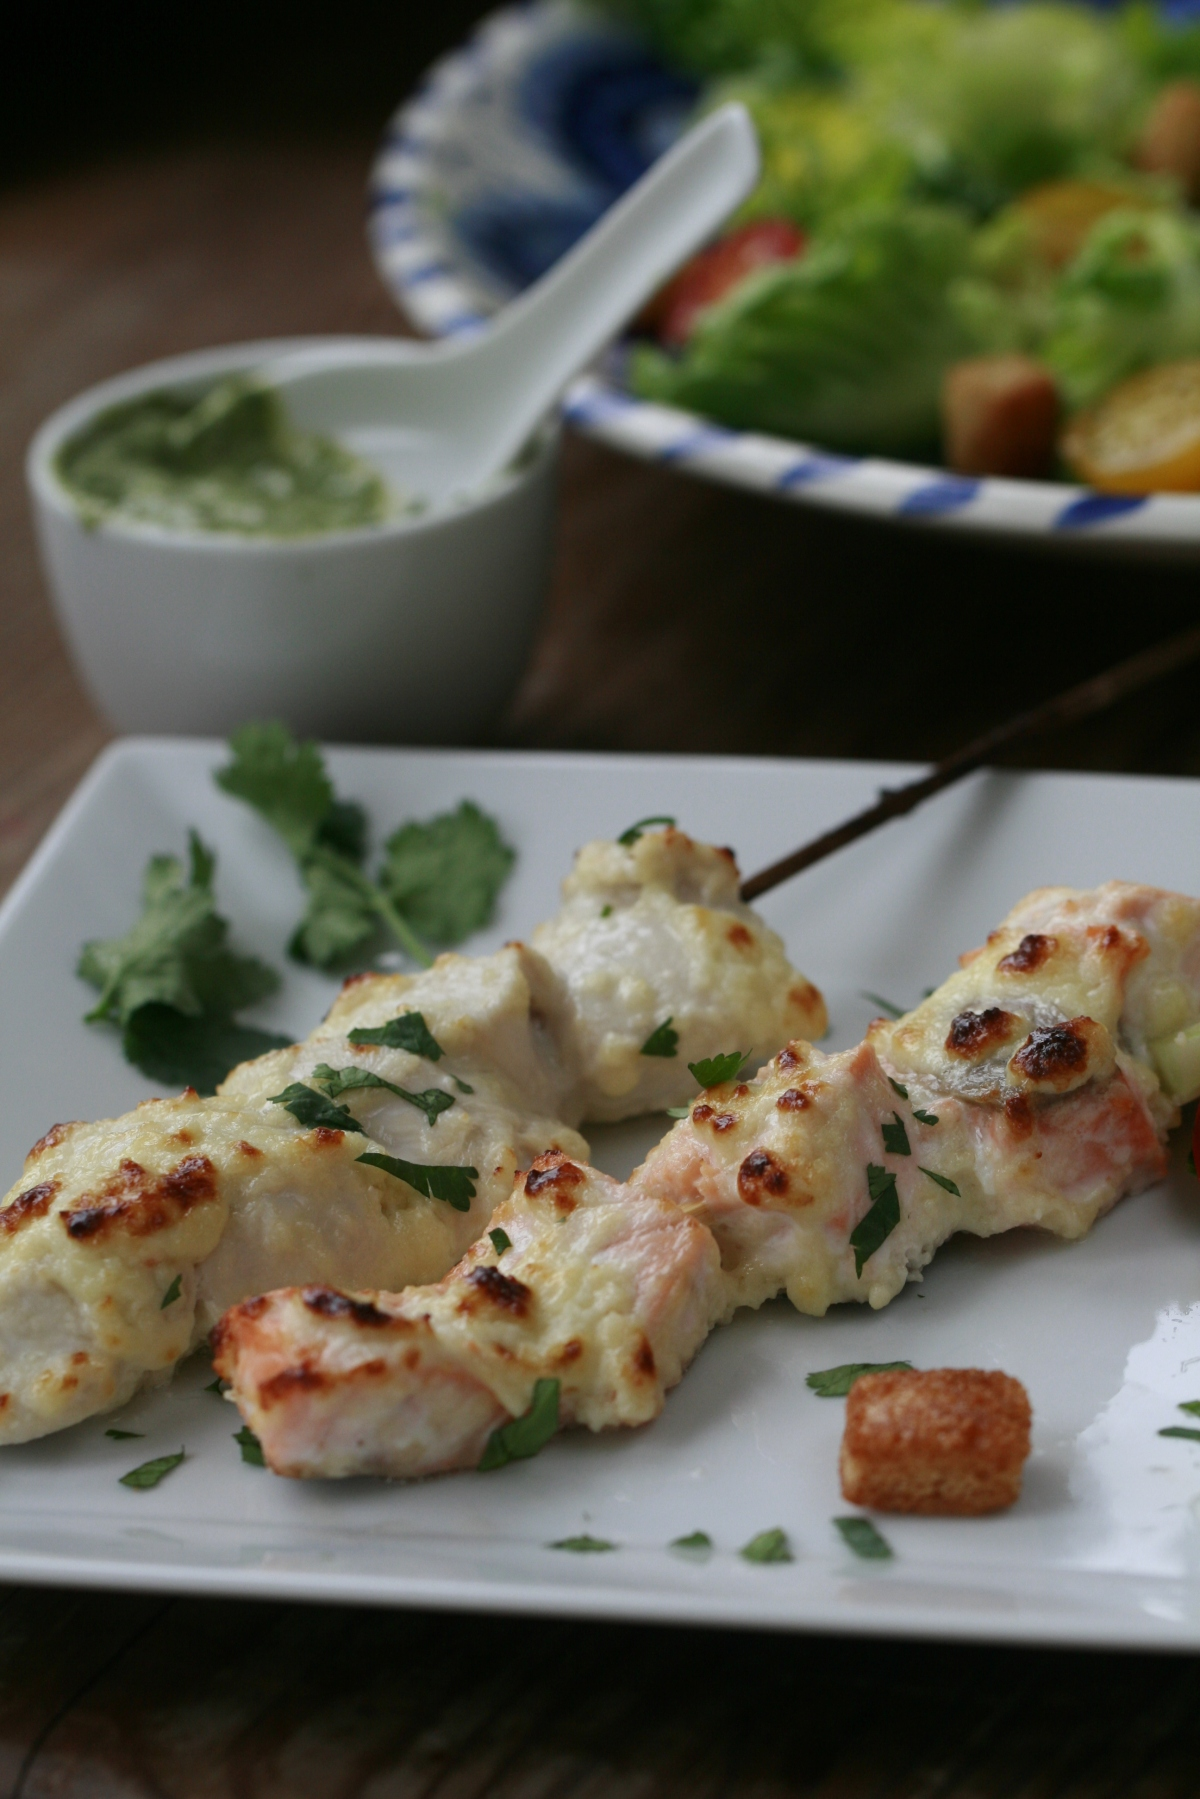 Chicken and Salmon Tikka Skewers served with Fresh Coriander and mint Chutney and whole grain mayonnaise.